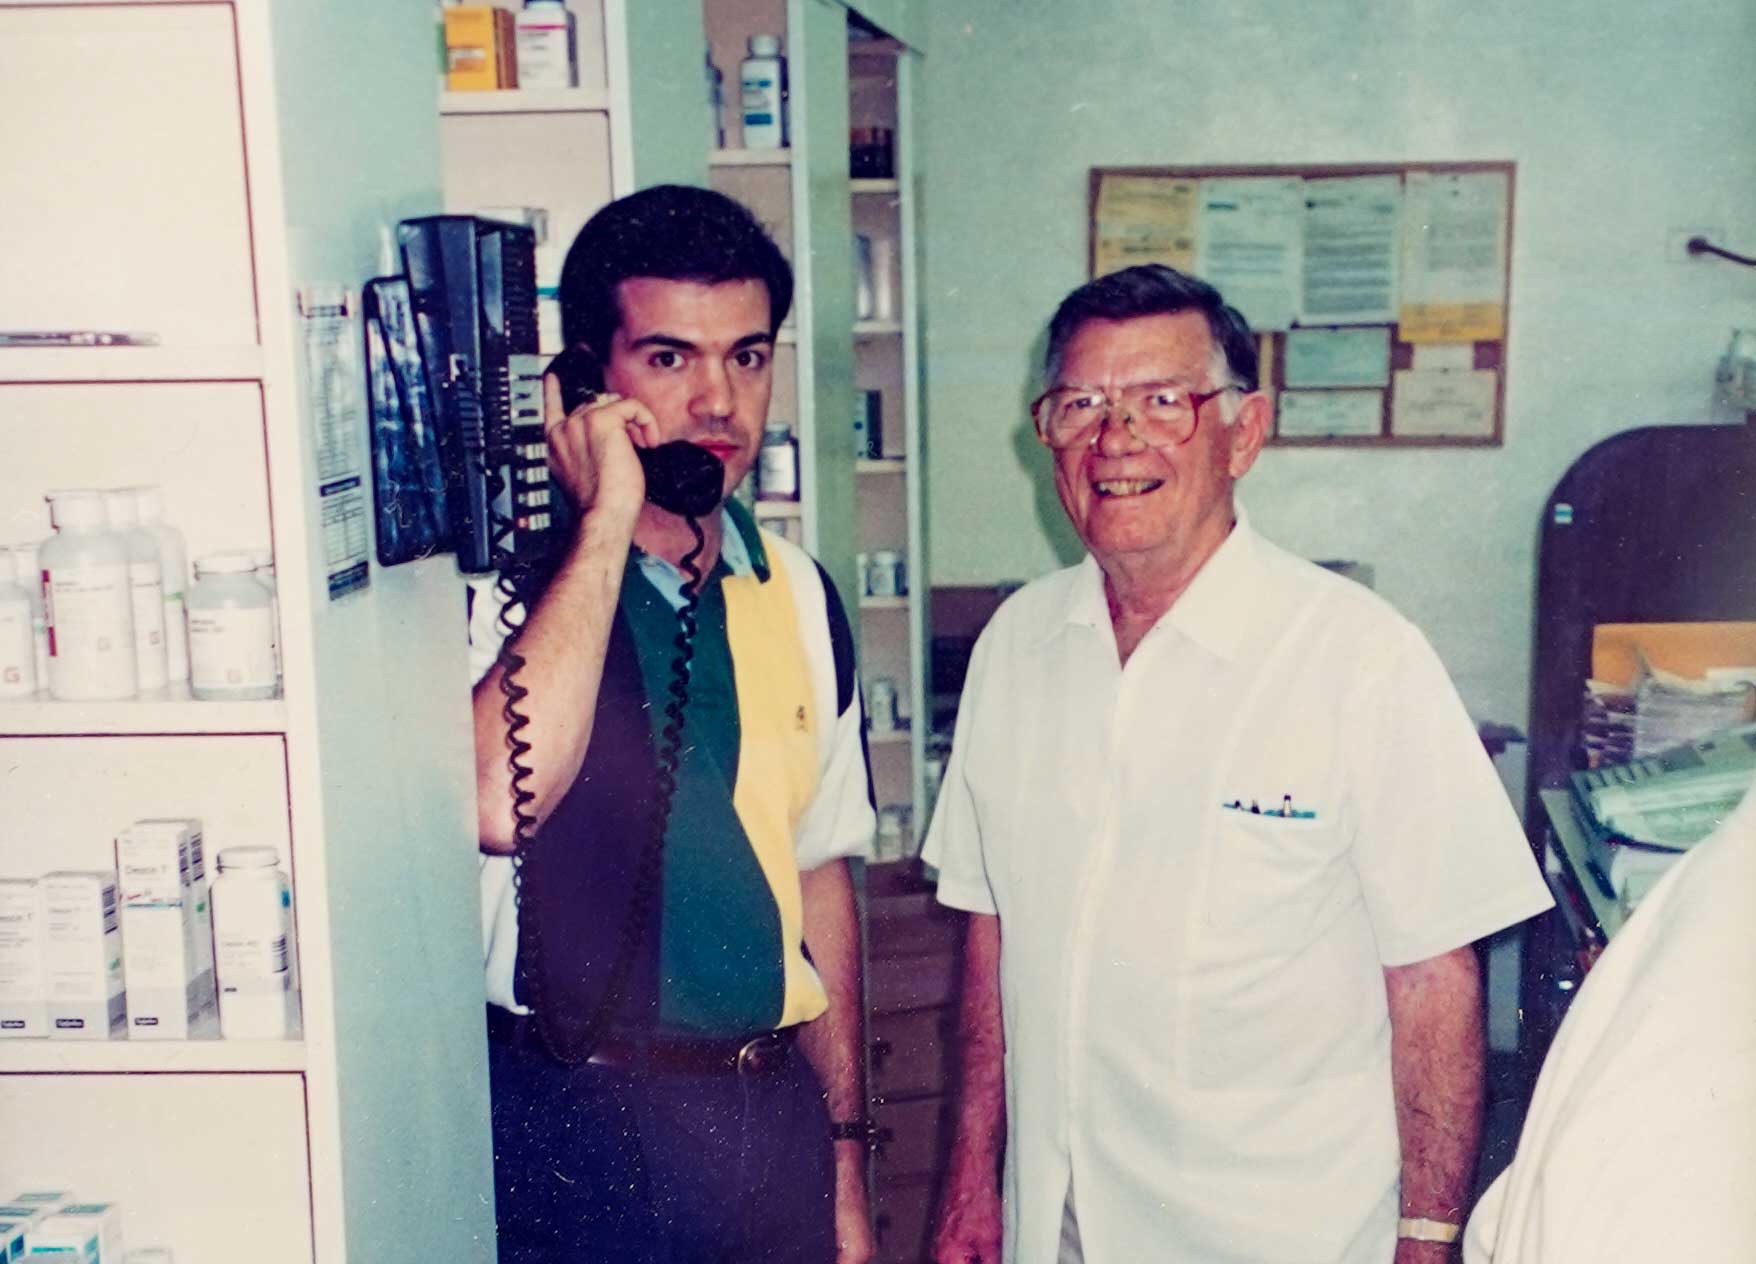 Old photo of Roy M. Stewart, Jr, the original owner of Drive-In Drug Store, and the current owner Gerald Giardina.